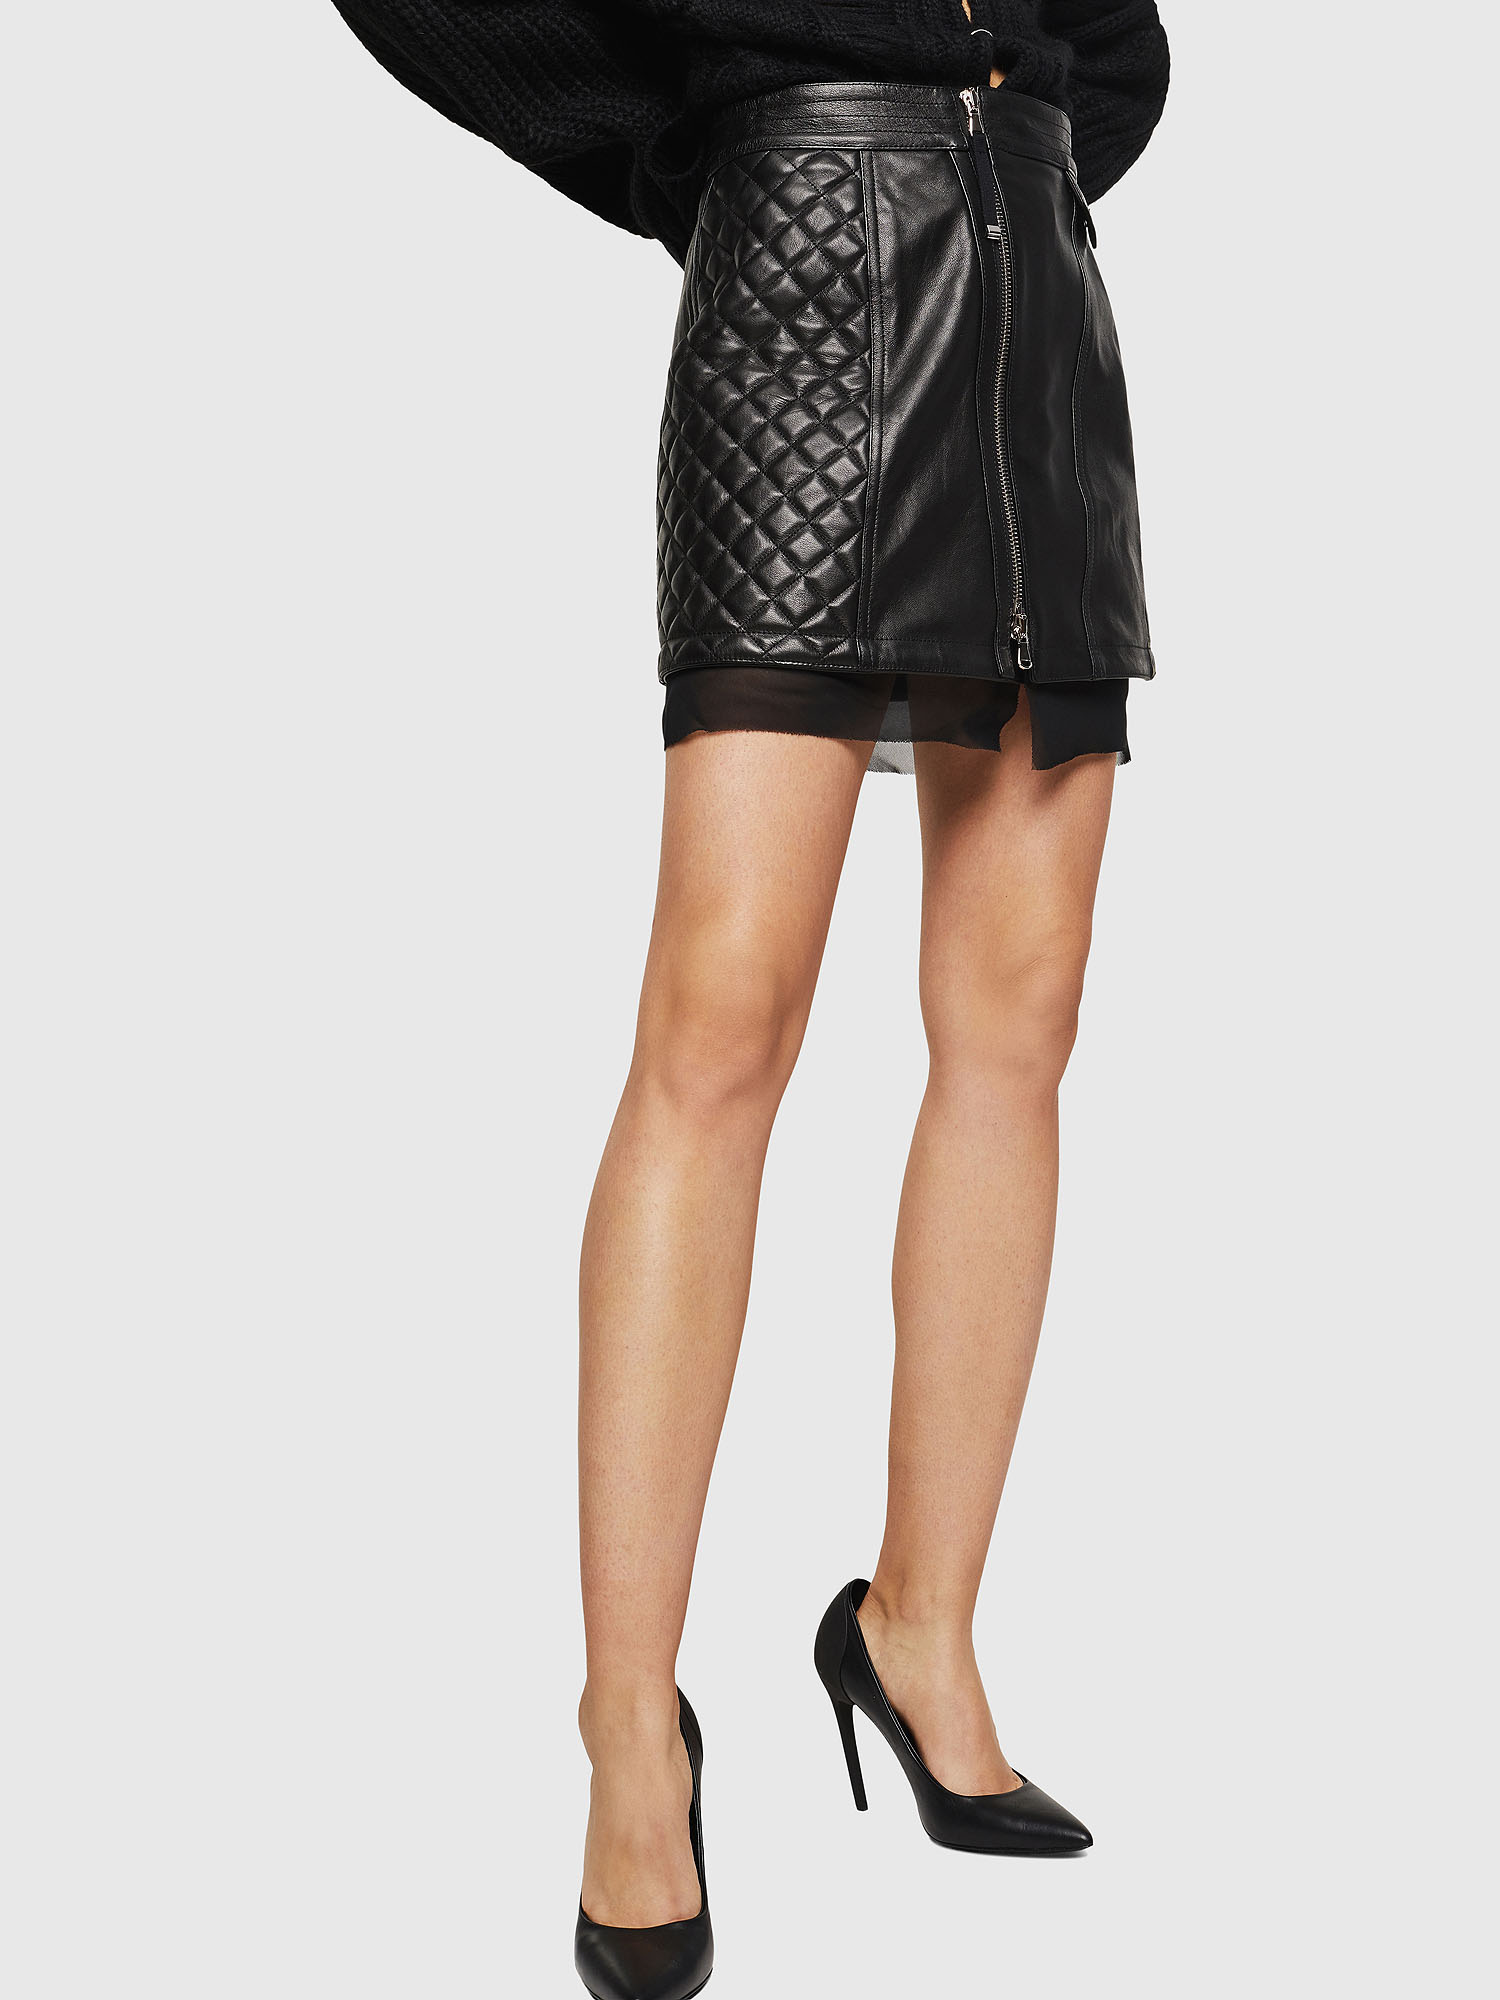 Diesel - OLESIA,  - Leather skirts - Image 1